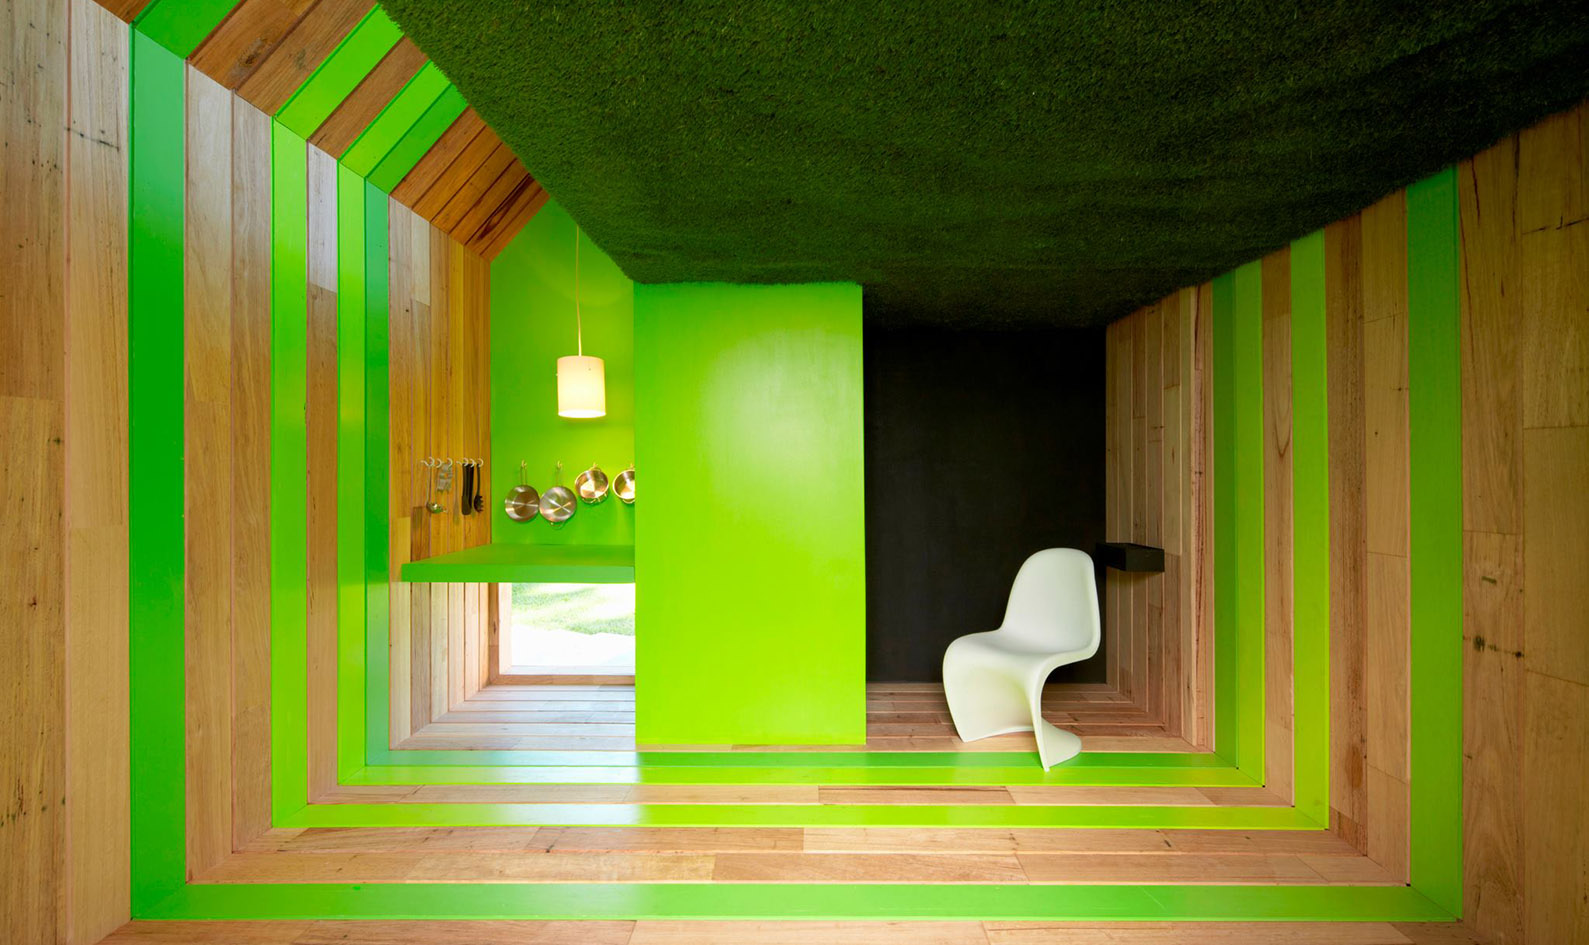 Design For Kids   Inhabitat   Green Design  Innovation  Architecture     Morphing cubby house gives kids control of play space